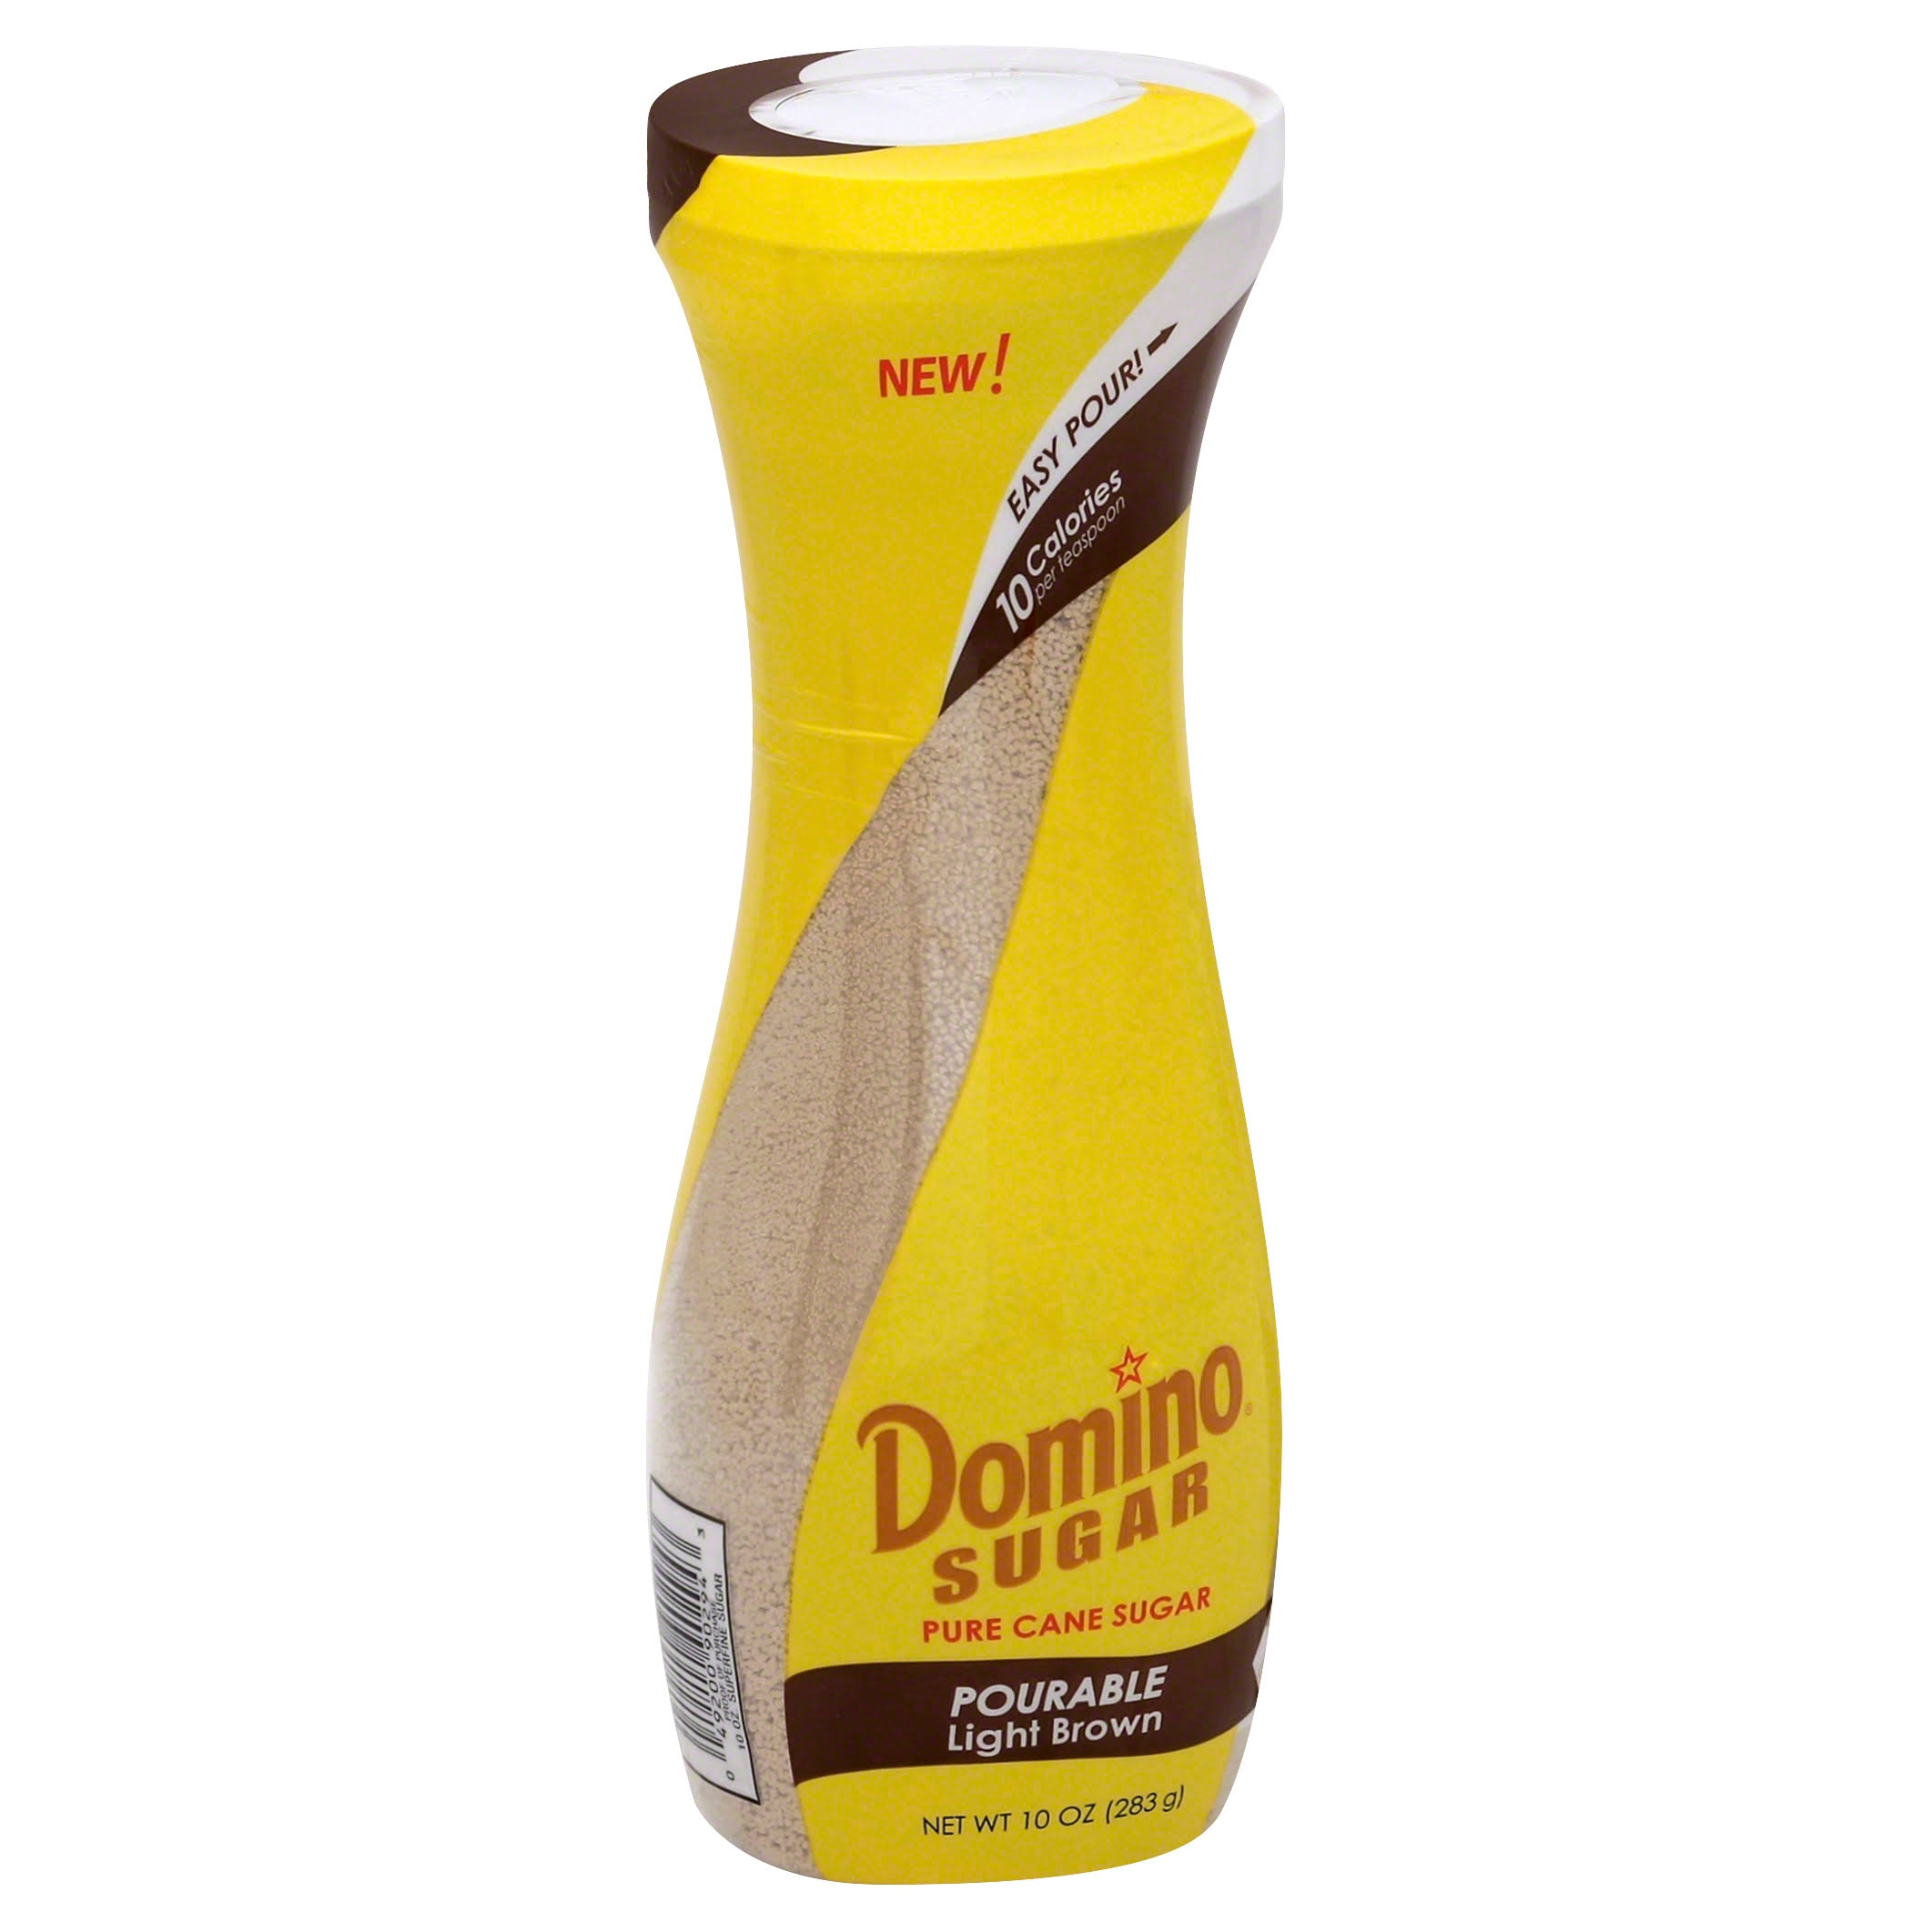 Domino Pourable Pure Cane Sugar - Light Brown, 283g